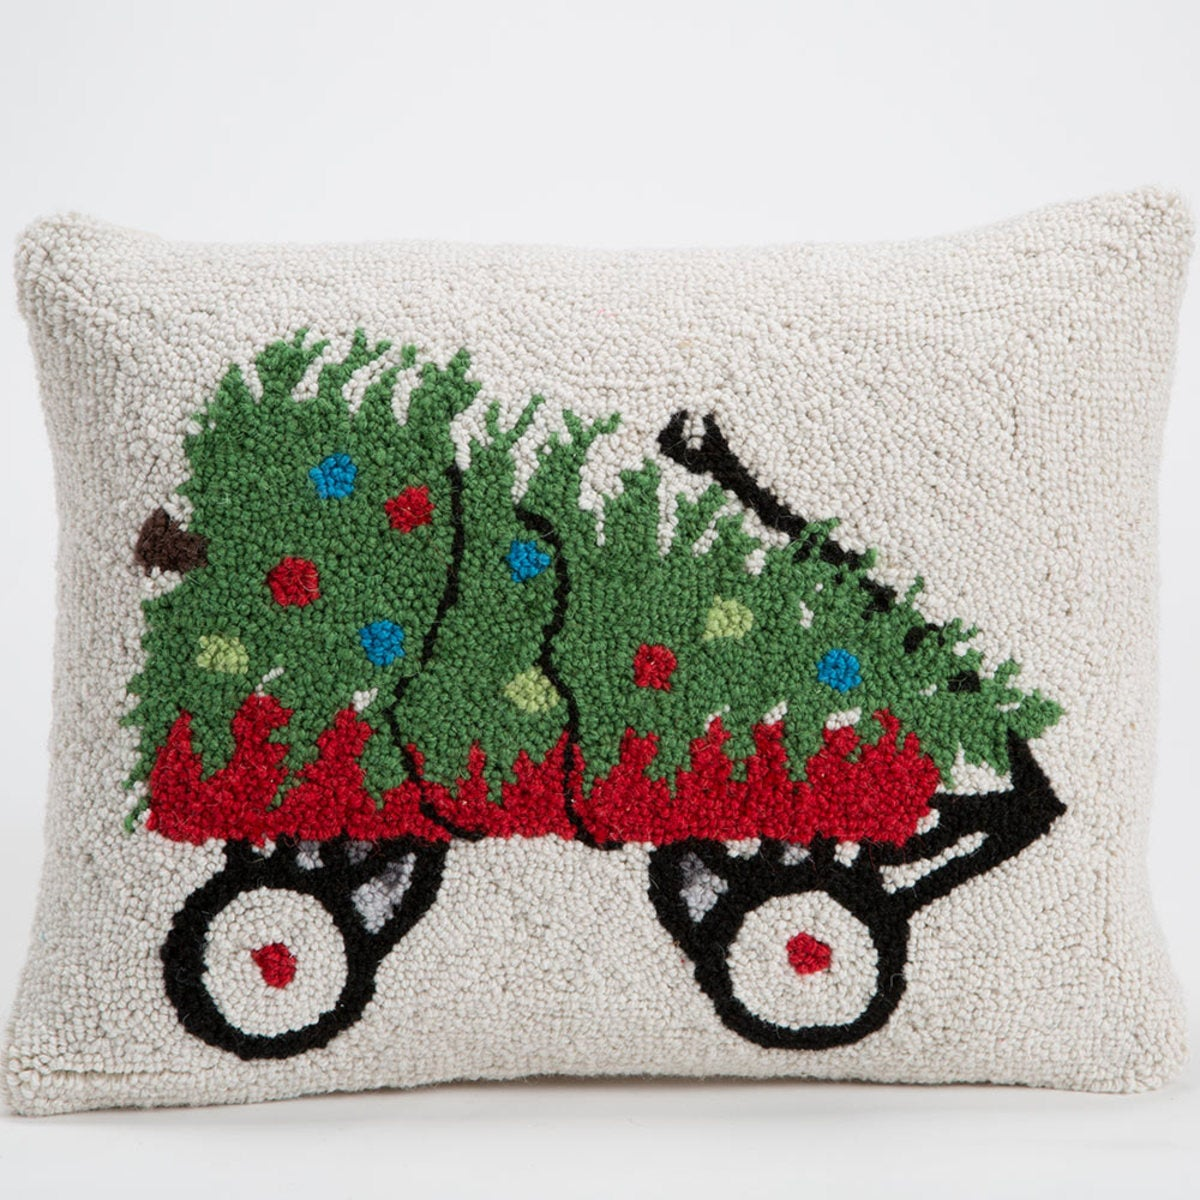 "Red Wagon Hand-Hooked Wool Pillow, 18""L x 14""H - Red Wagon"